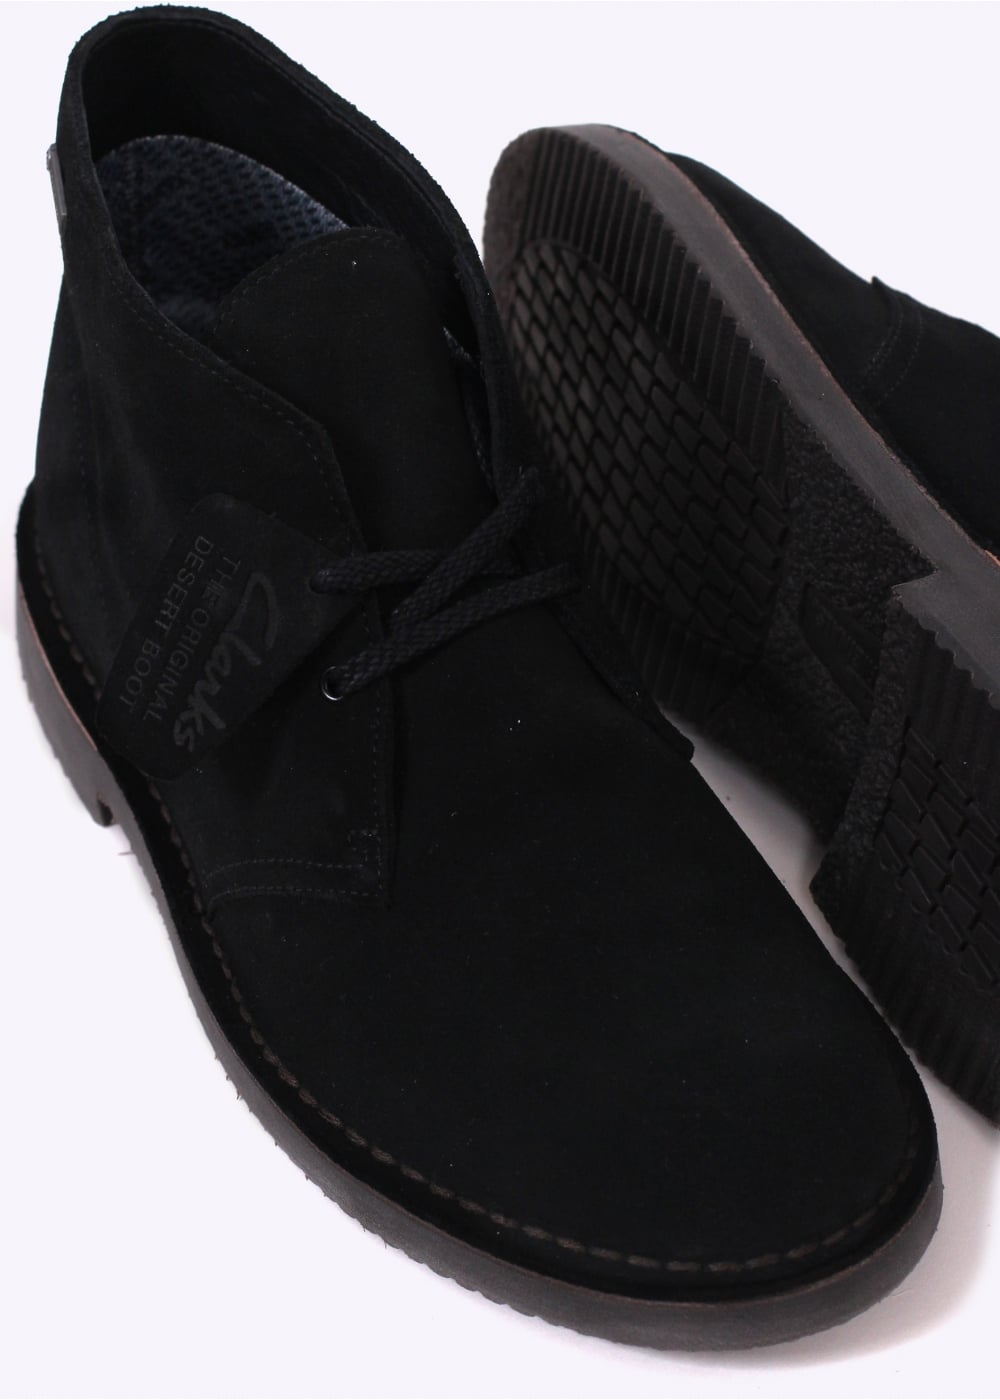 how to clean clarks gore tex shoes